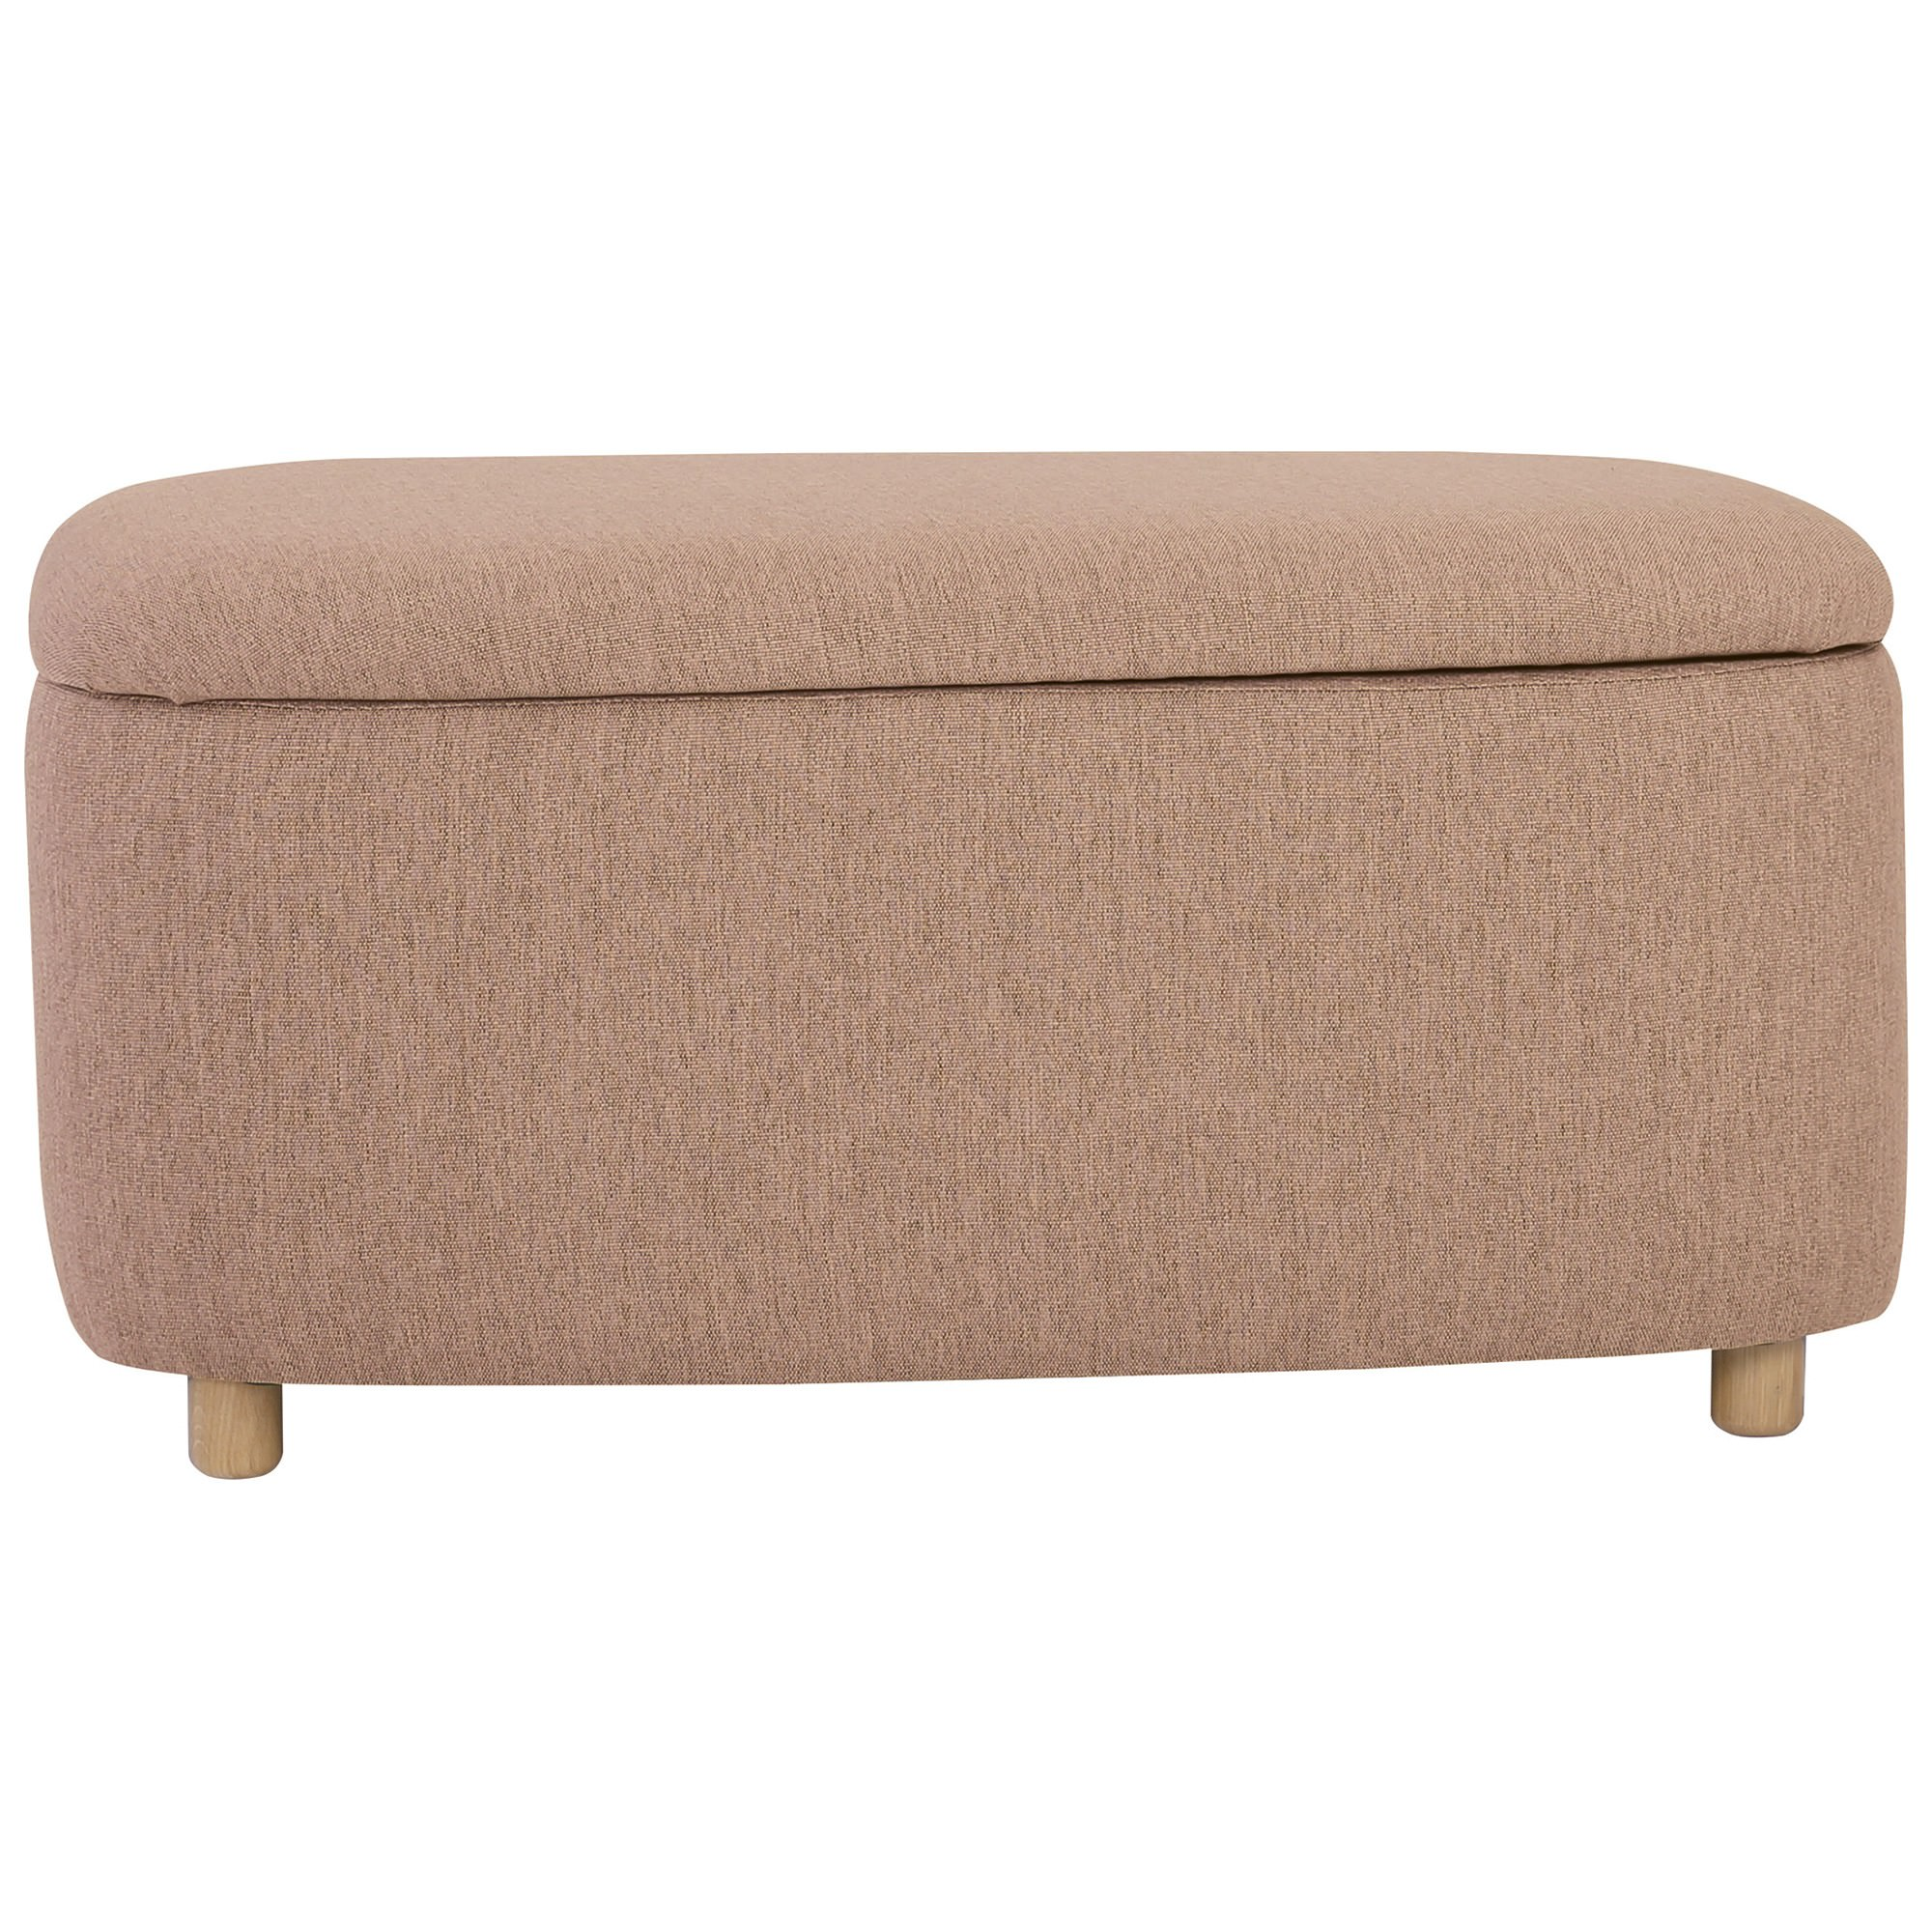 Daytona Fabric Ottoman, Large, Light Brown